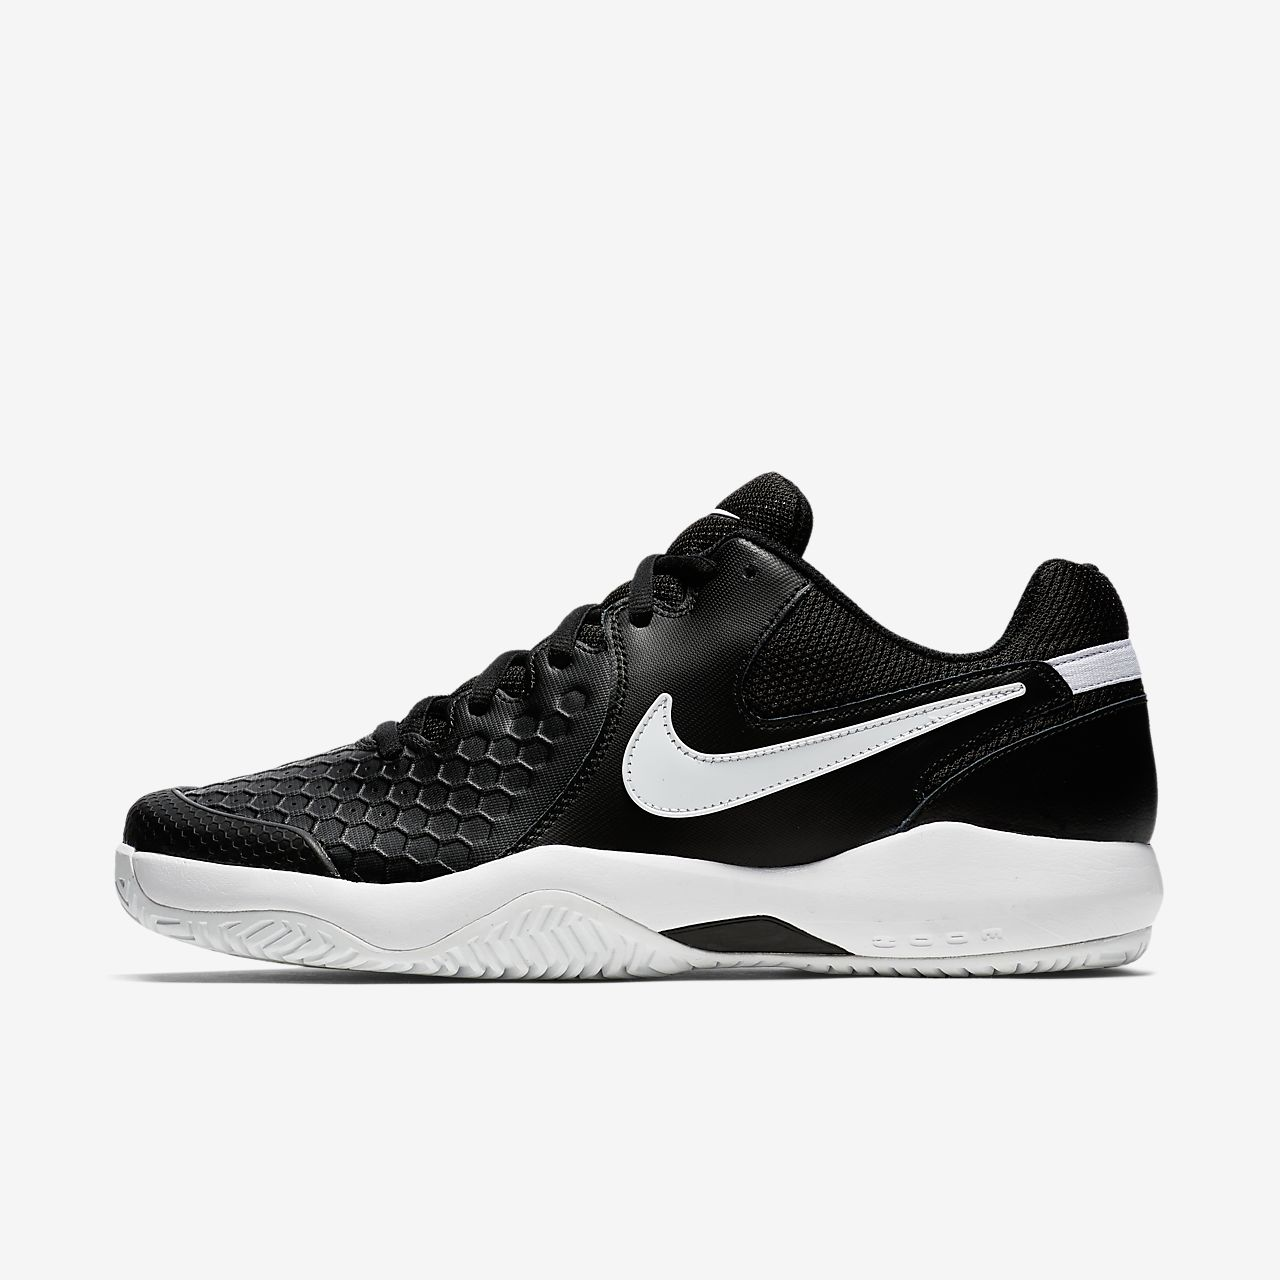 01eabf850365 NikeCourt Air Zoom Resistance Men s Hard Court Tennis Shoe. Nike.com GB